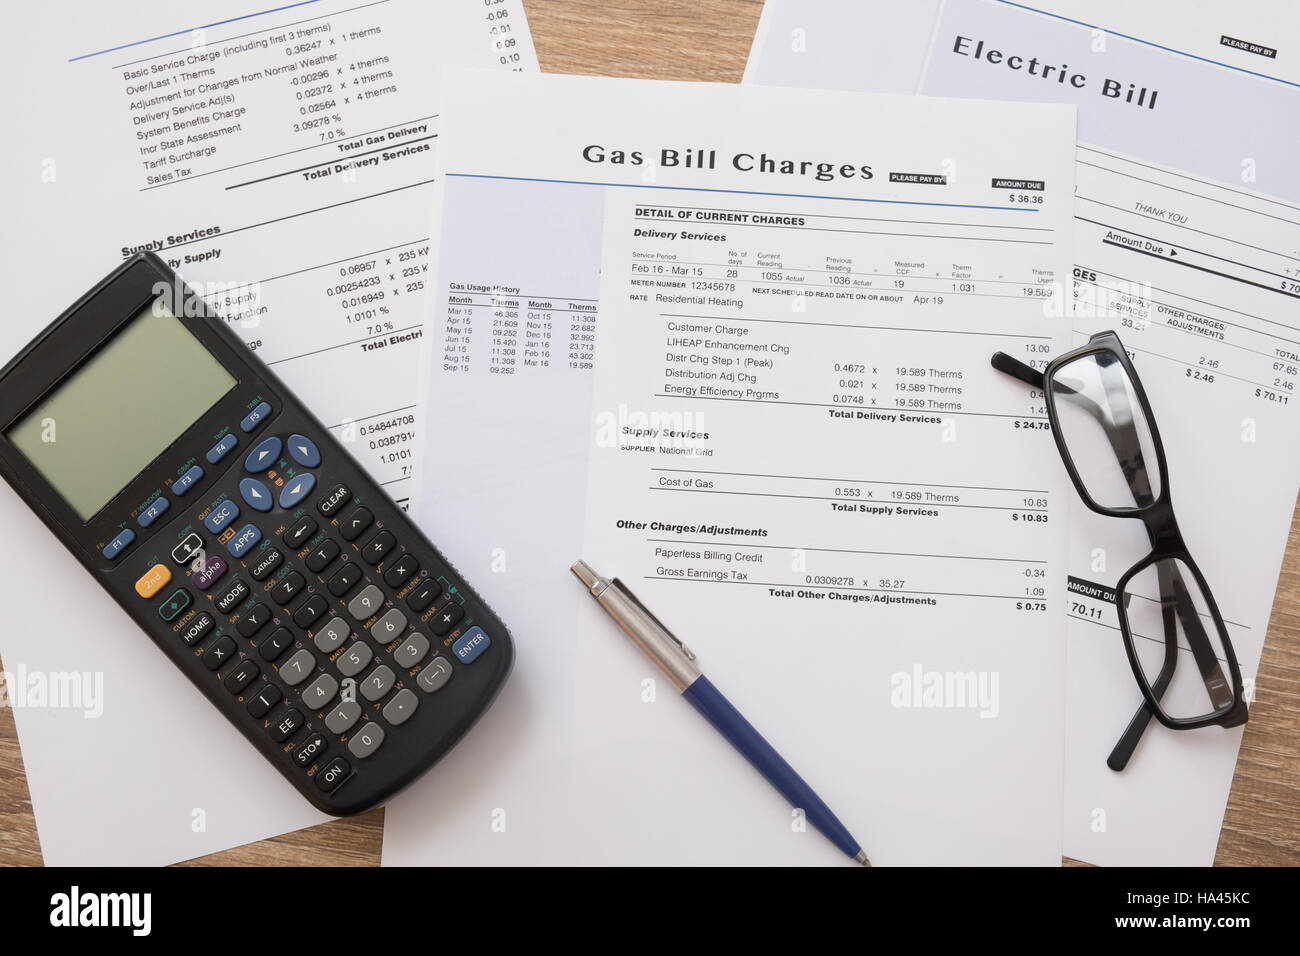 Gas bill charges paper form on the table - Stock Image